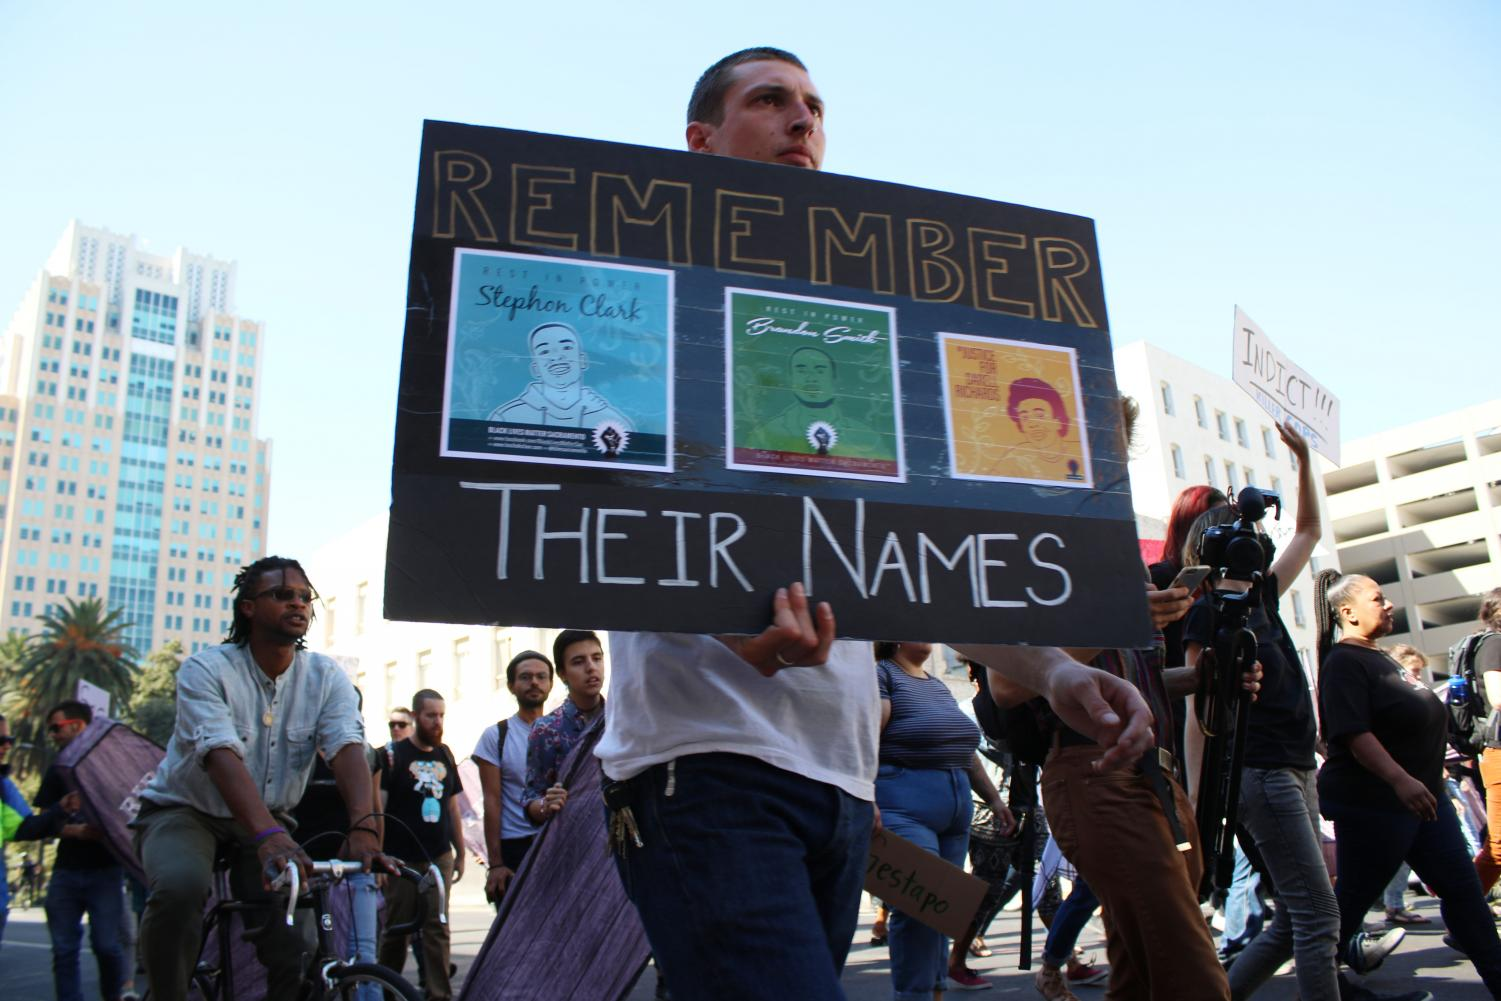 A+man+who+would+not+give+his+identity+holds+a+sign+in+honor+of+Stephon+Clark%2C+Brandon+Smith+and+Darell+Richards+at+a+protest+in+downtown+Sacramento+on+Tuesday%2C+Sept.+18.+The+protest+was+held+on+the+six+month+anniversary+of+Stephon+Clark%27s+death.